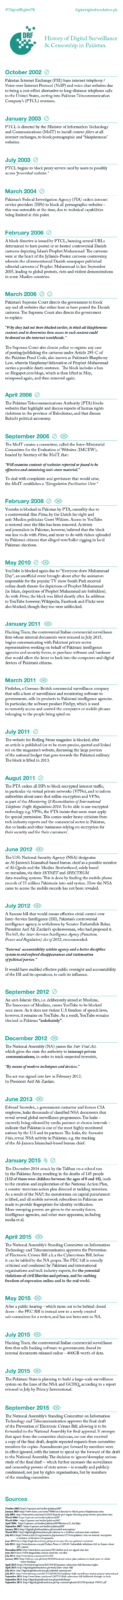 A History Of Digital Surveillance & Privacy in Pakistan